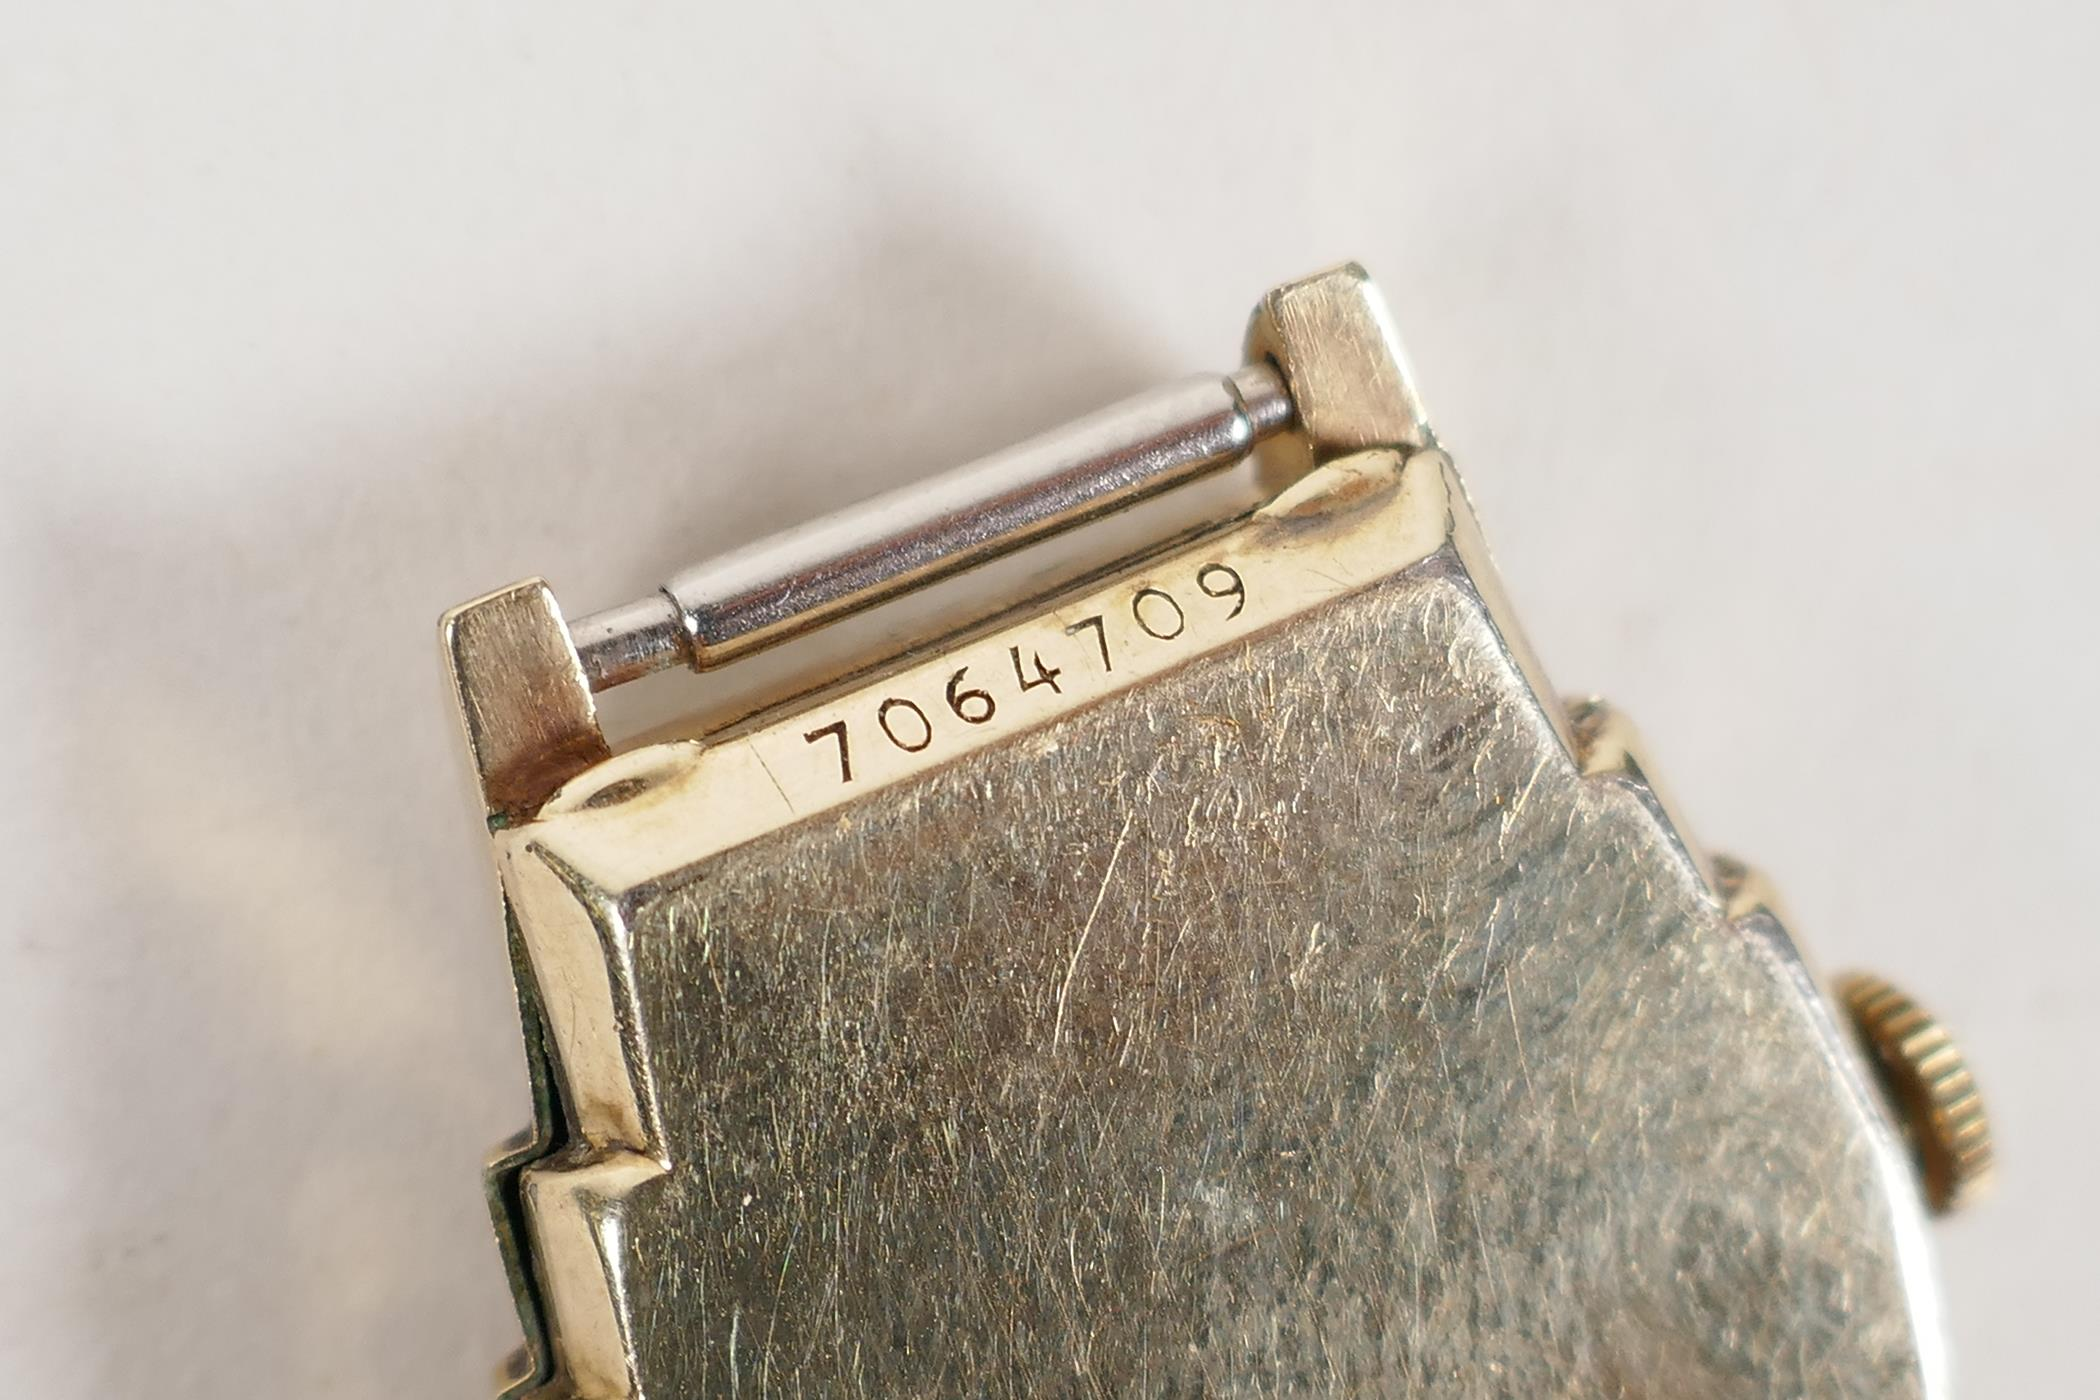 A vintage gilt plated Bulova wrist watch with a small subsidiary second hand dial, lacks strap, A/F, - Image 3 of 3